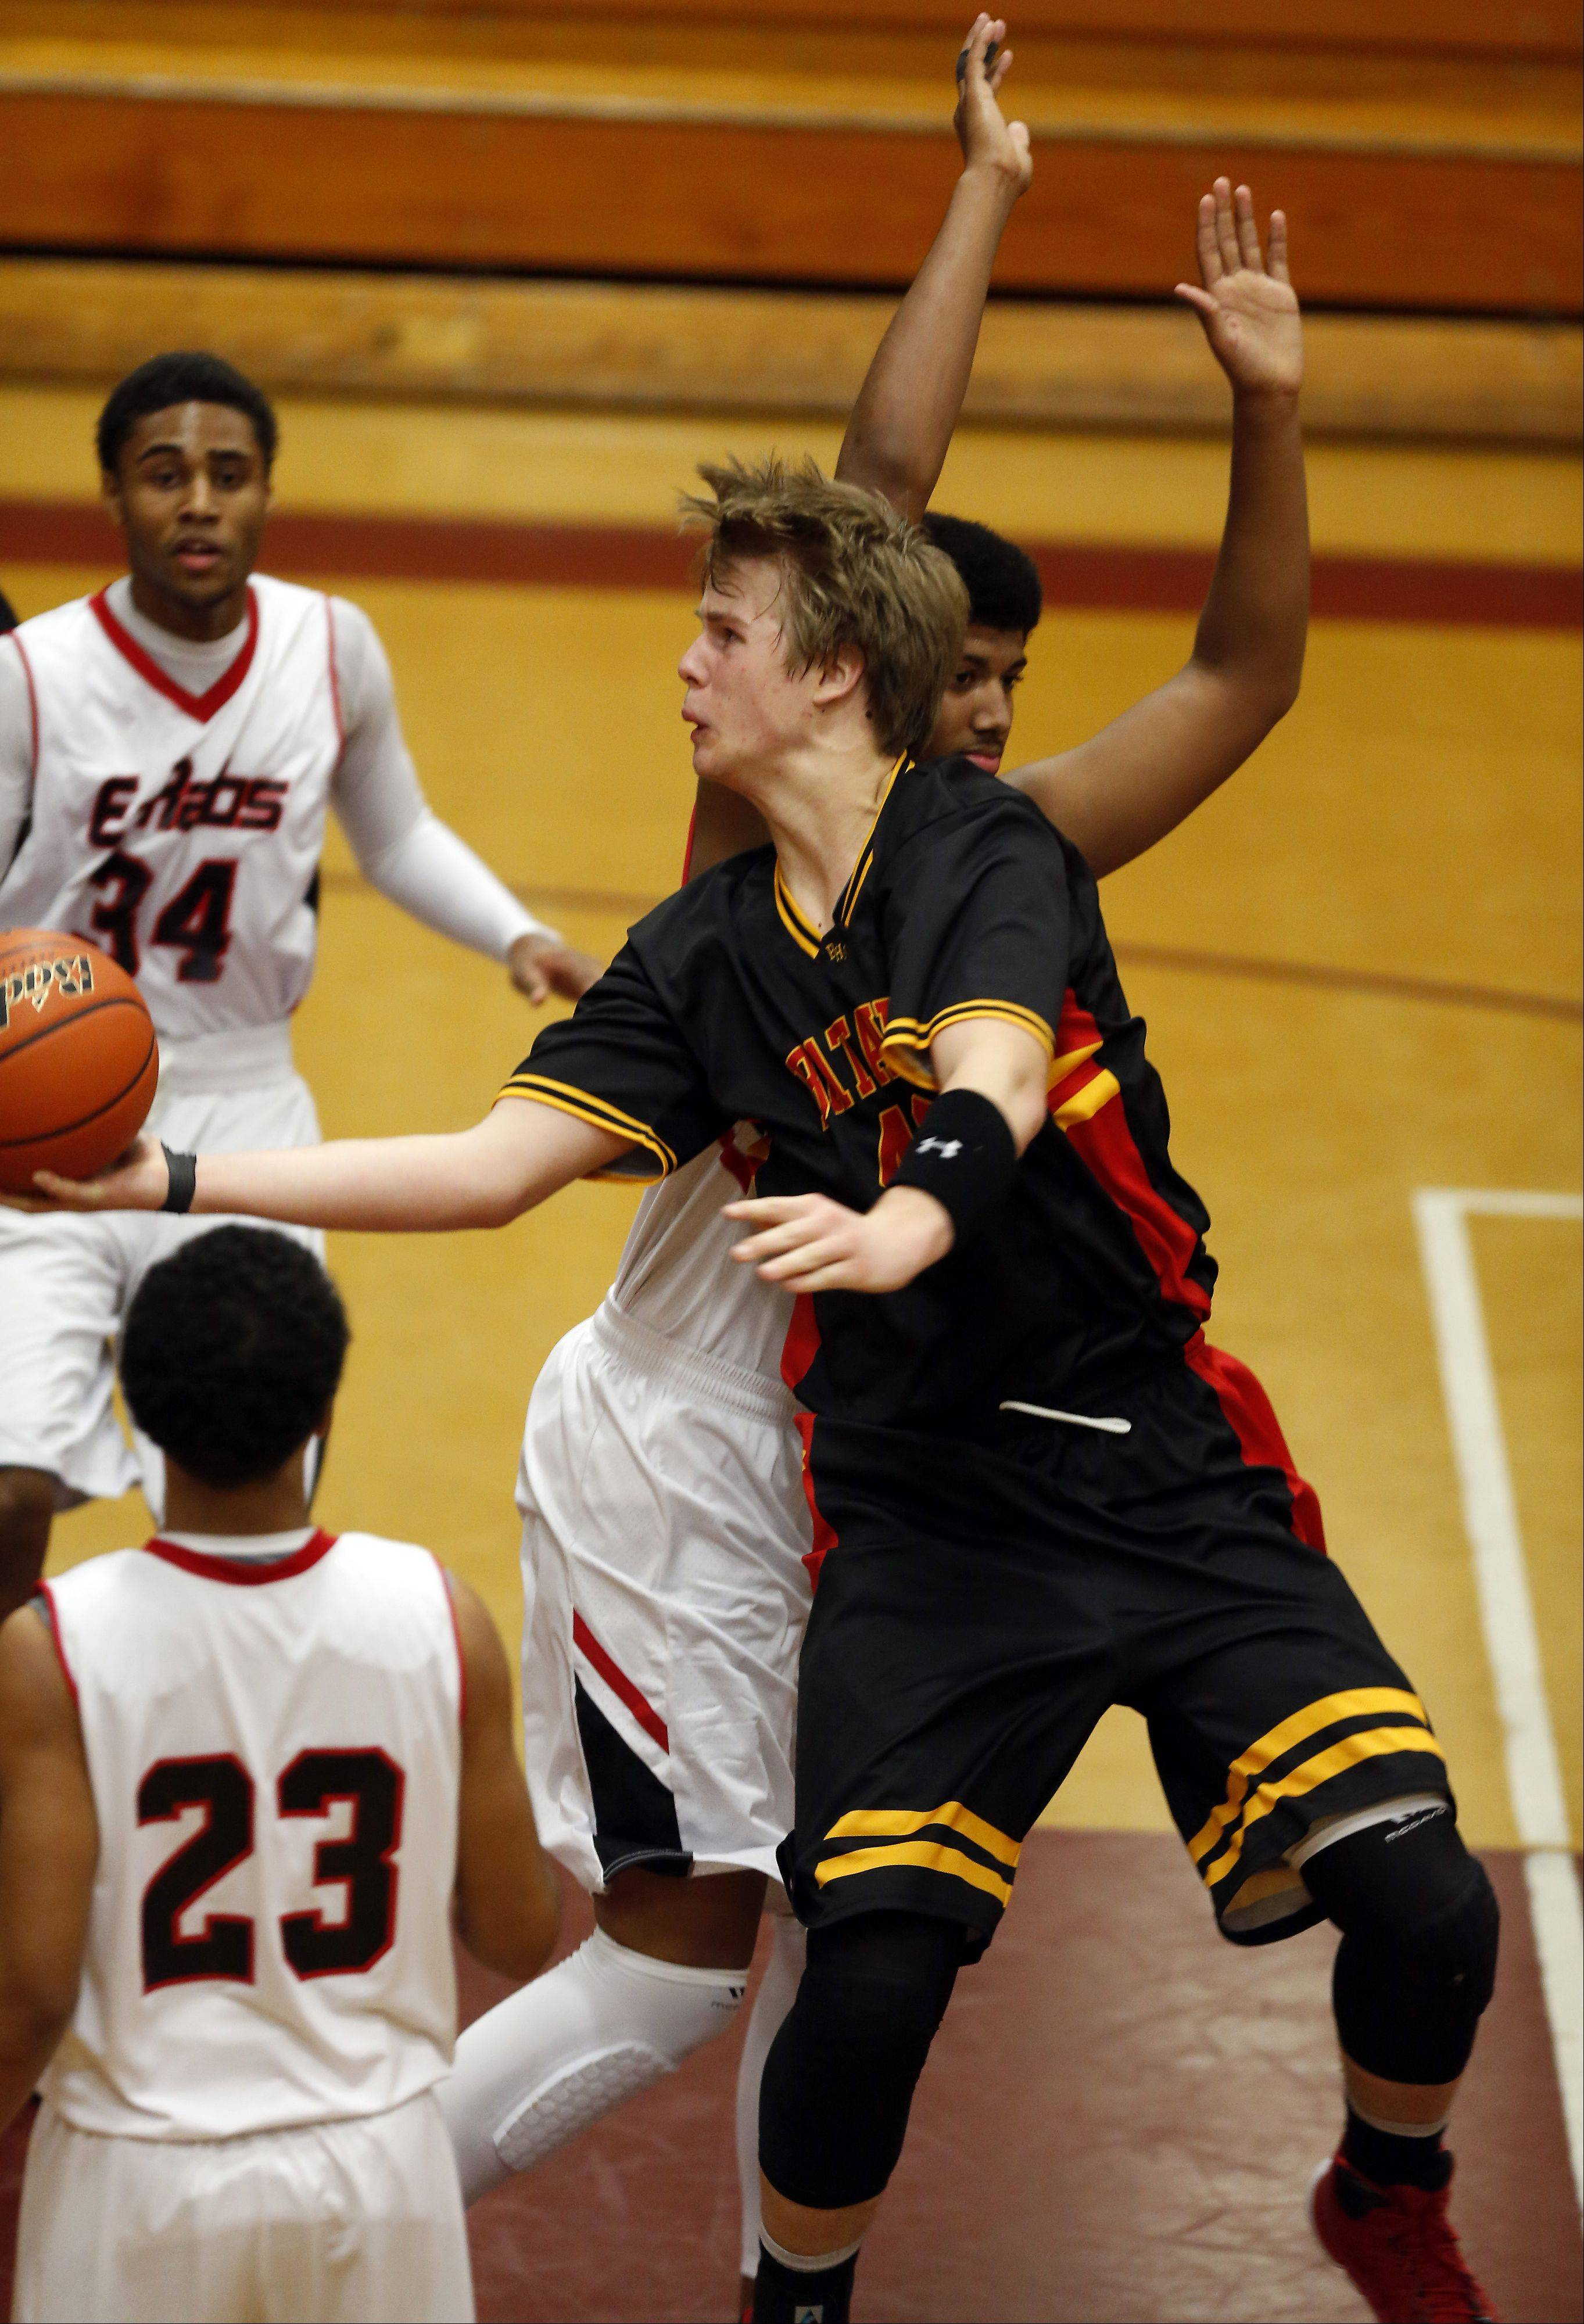 Brian Hill/bhill@dailyherald.com Batavia's Chasen Peez goes strong to the hoop past Rockford East's Bryant Nolan at the 39th Annual Elgin Boys Holiday Basketball Tournament at Elgin High School Saturday December 28, 2013.